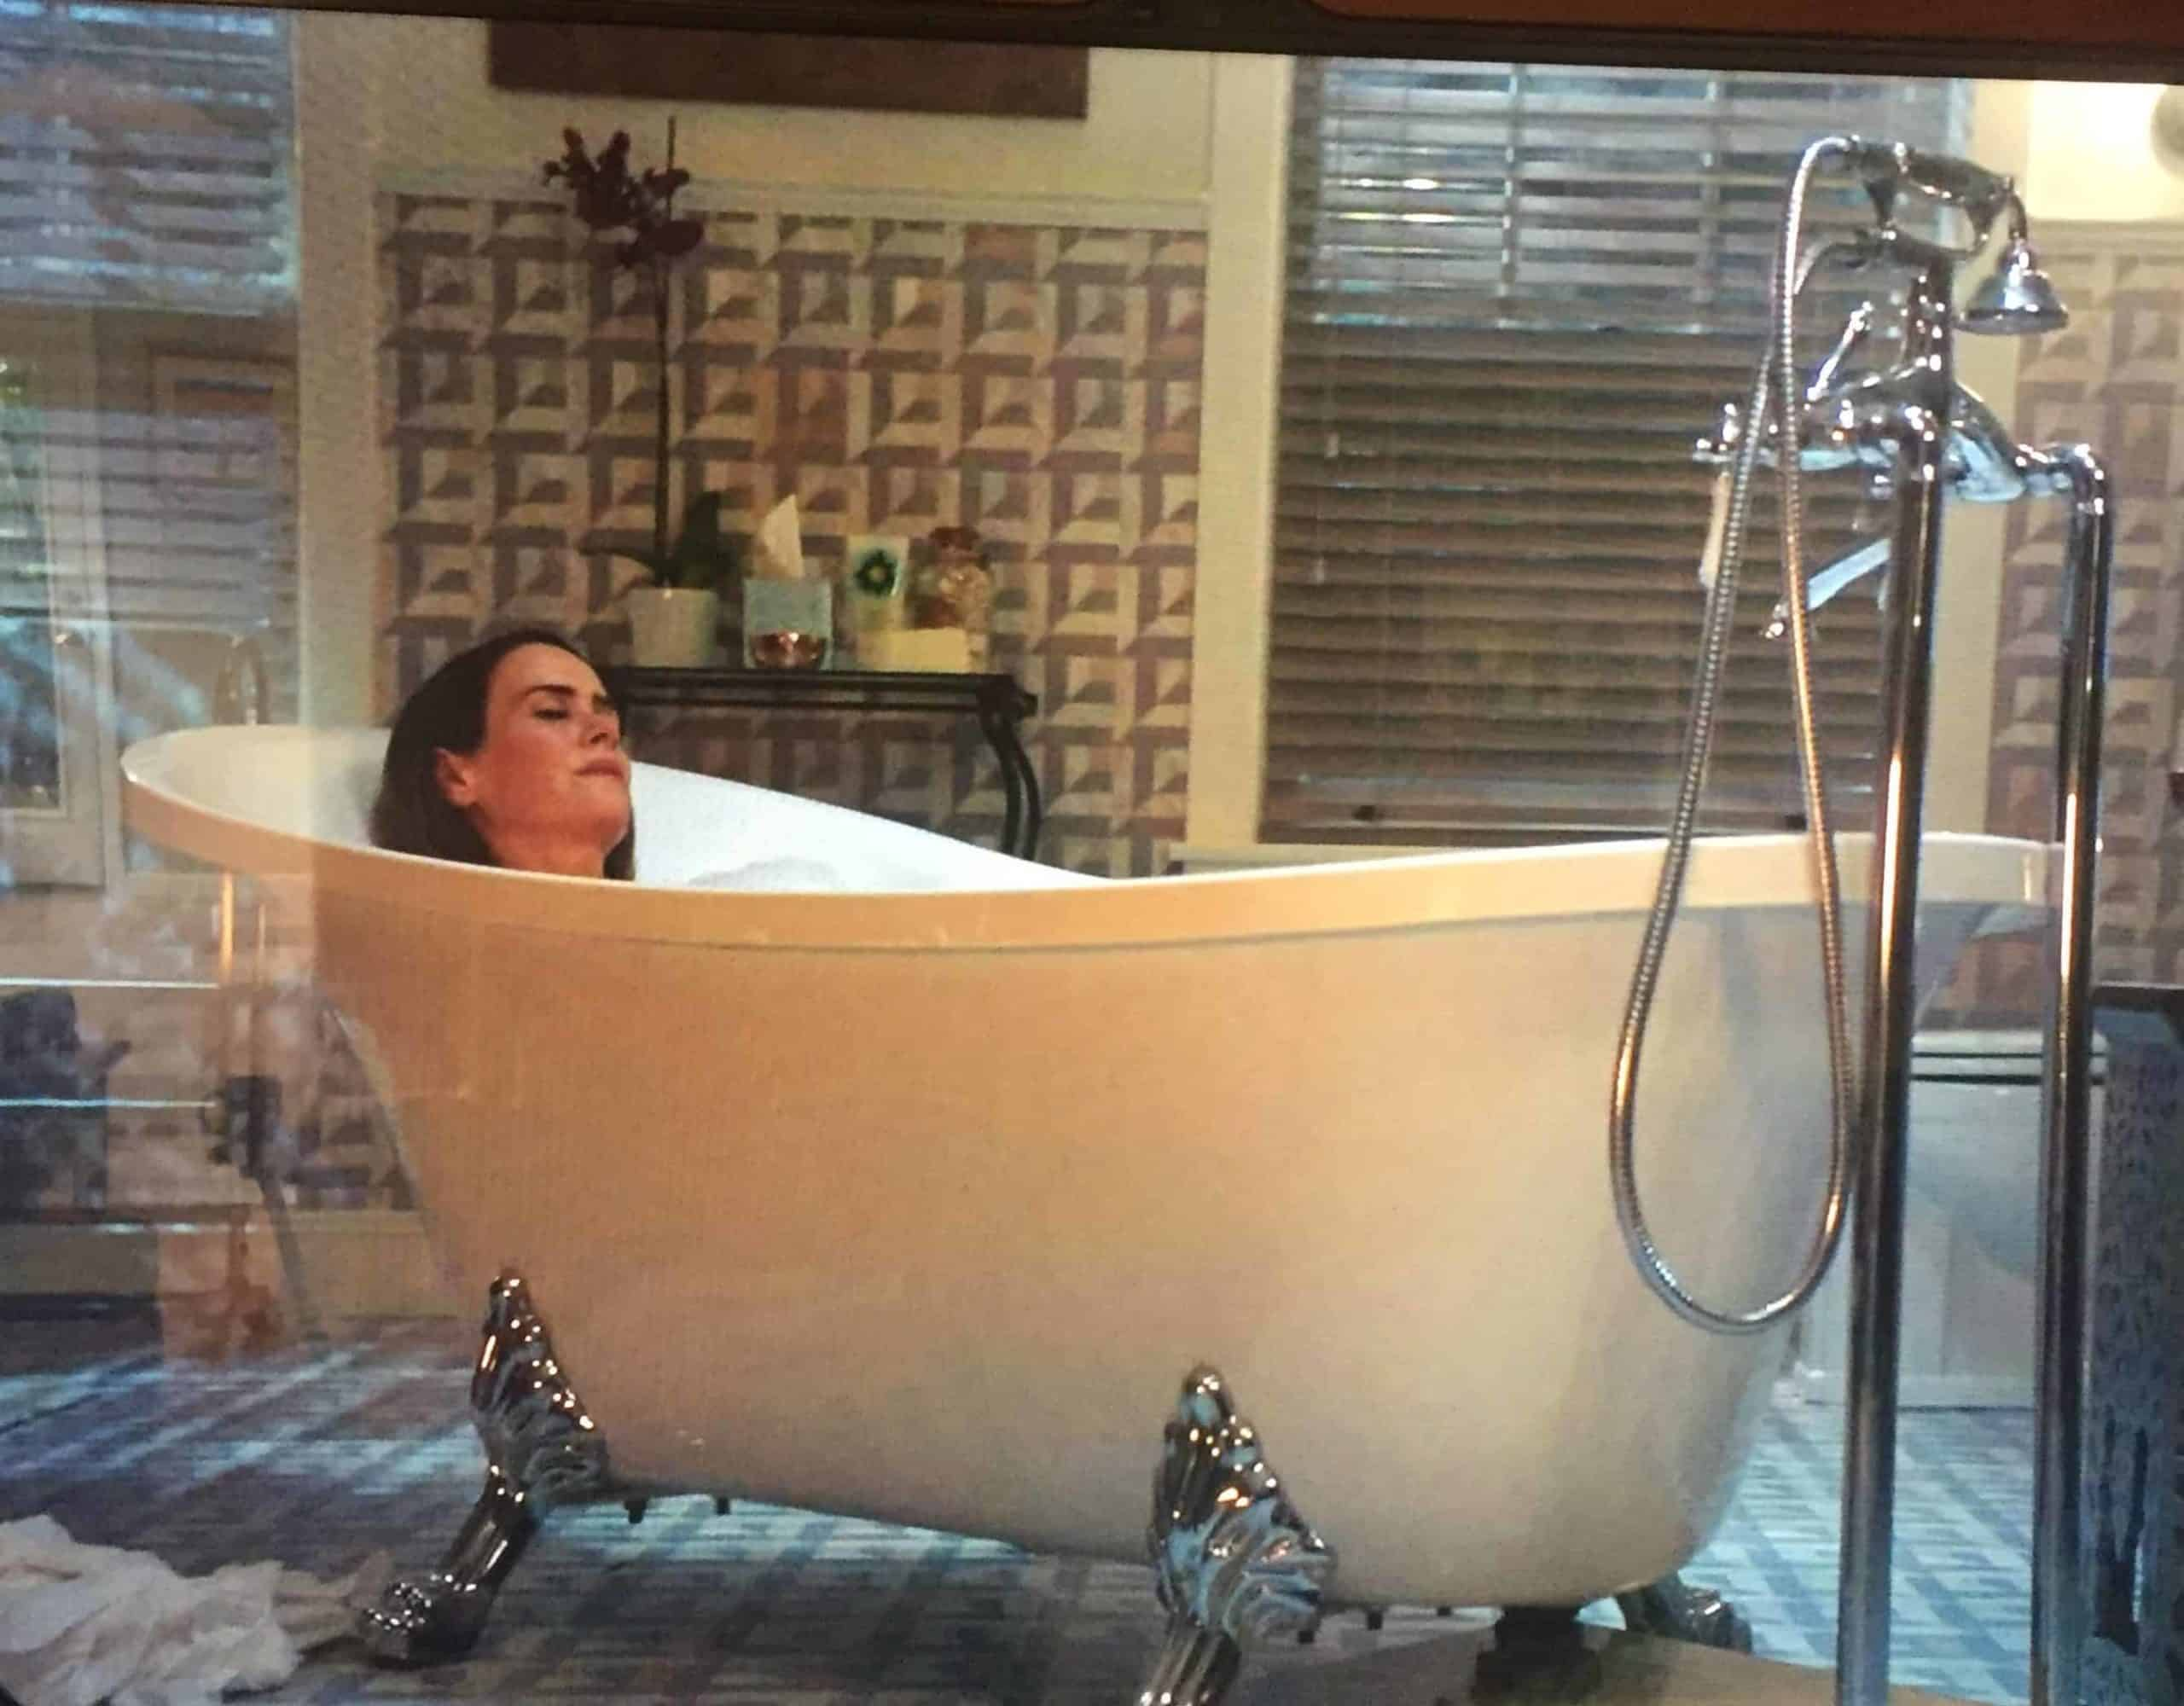 Clawfoot tub in American Horror Story: Cult